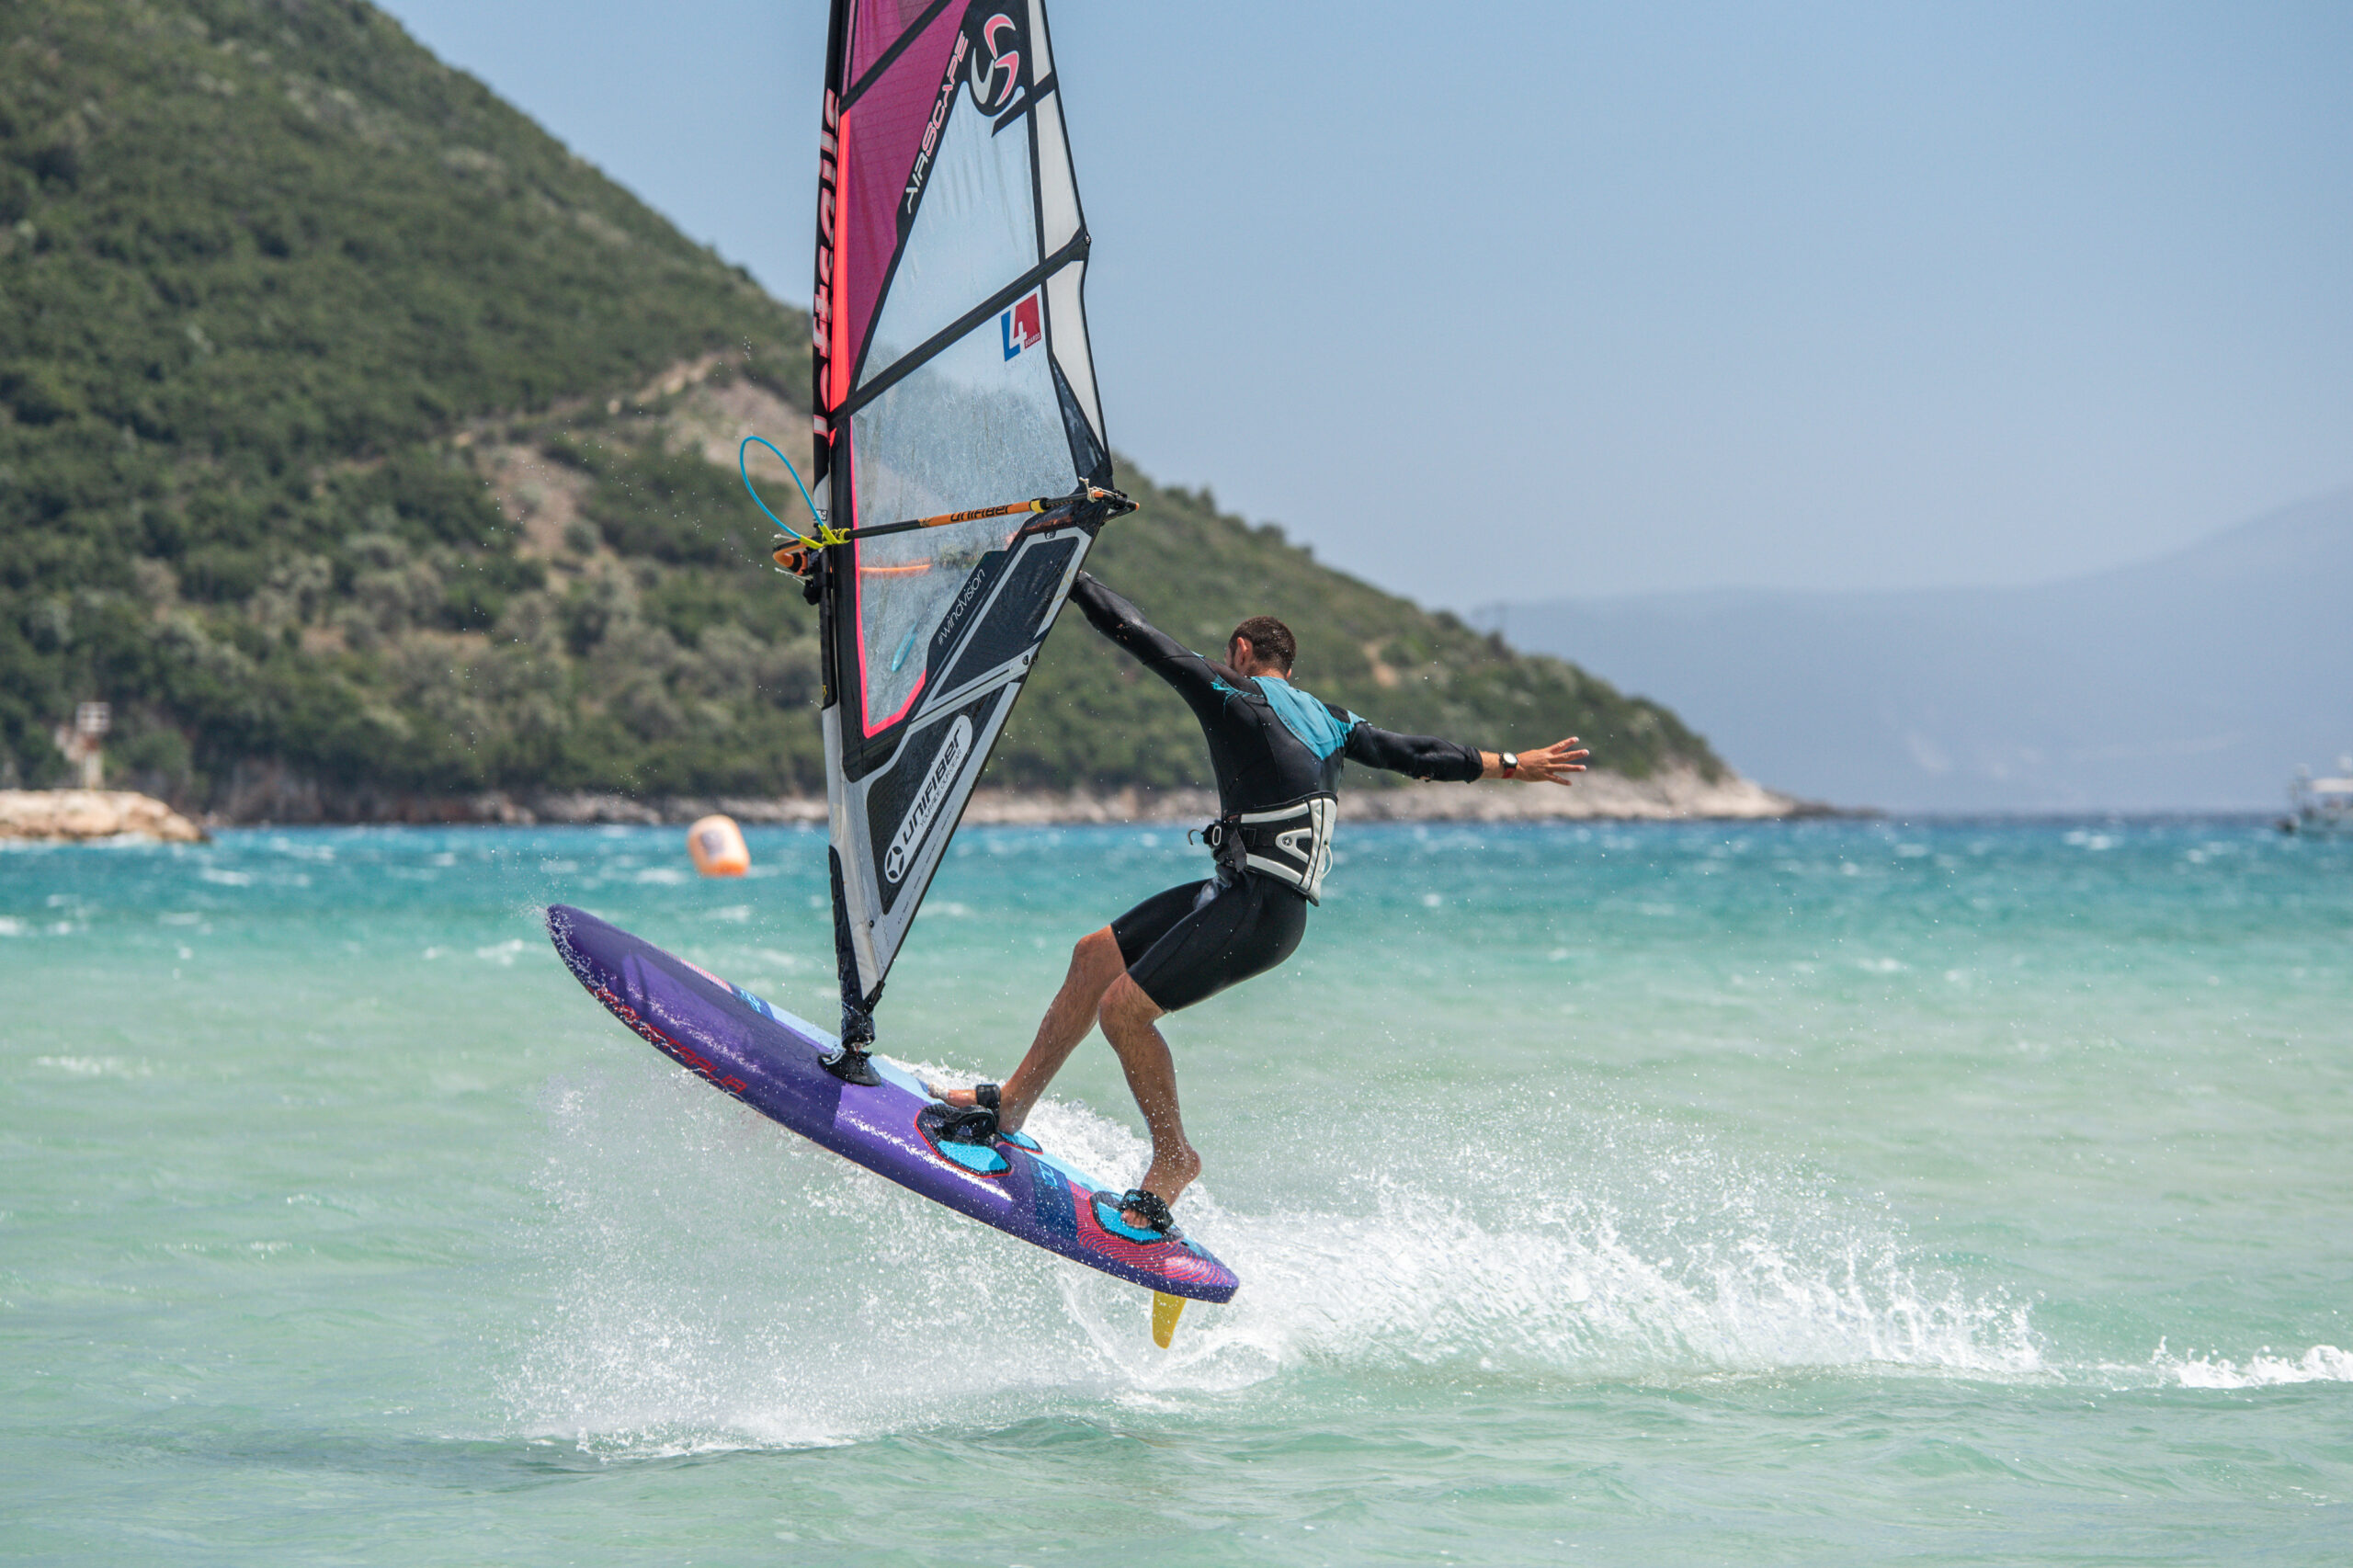 OceanЯ sponsors windsurfer George Grisley as he competes in the 2021 European Freestyle Pro Tour